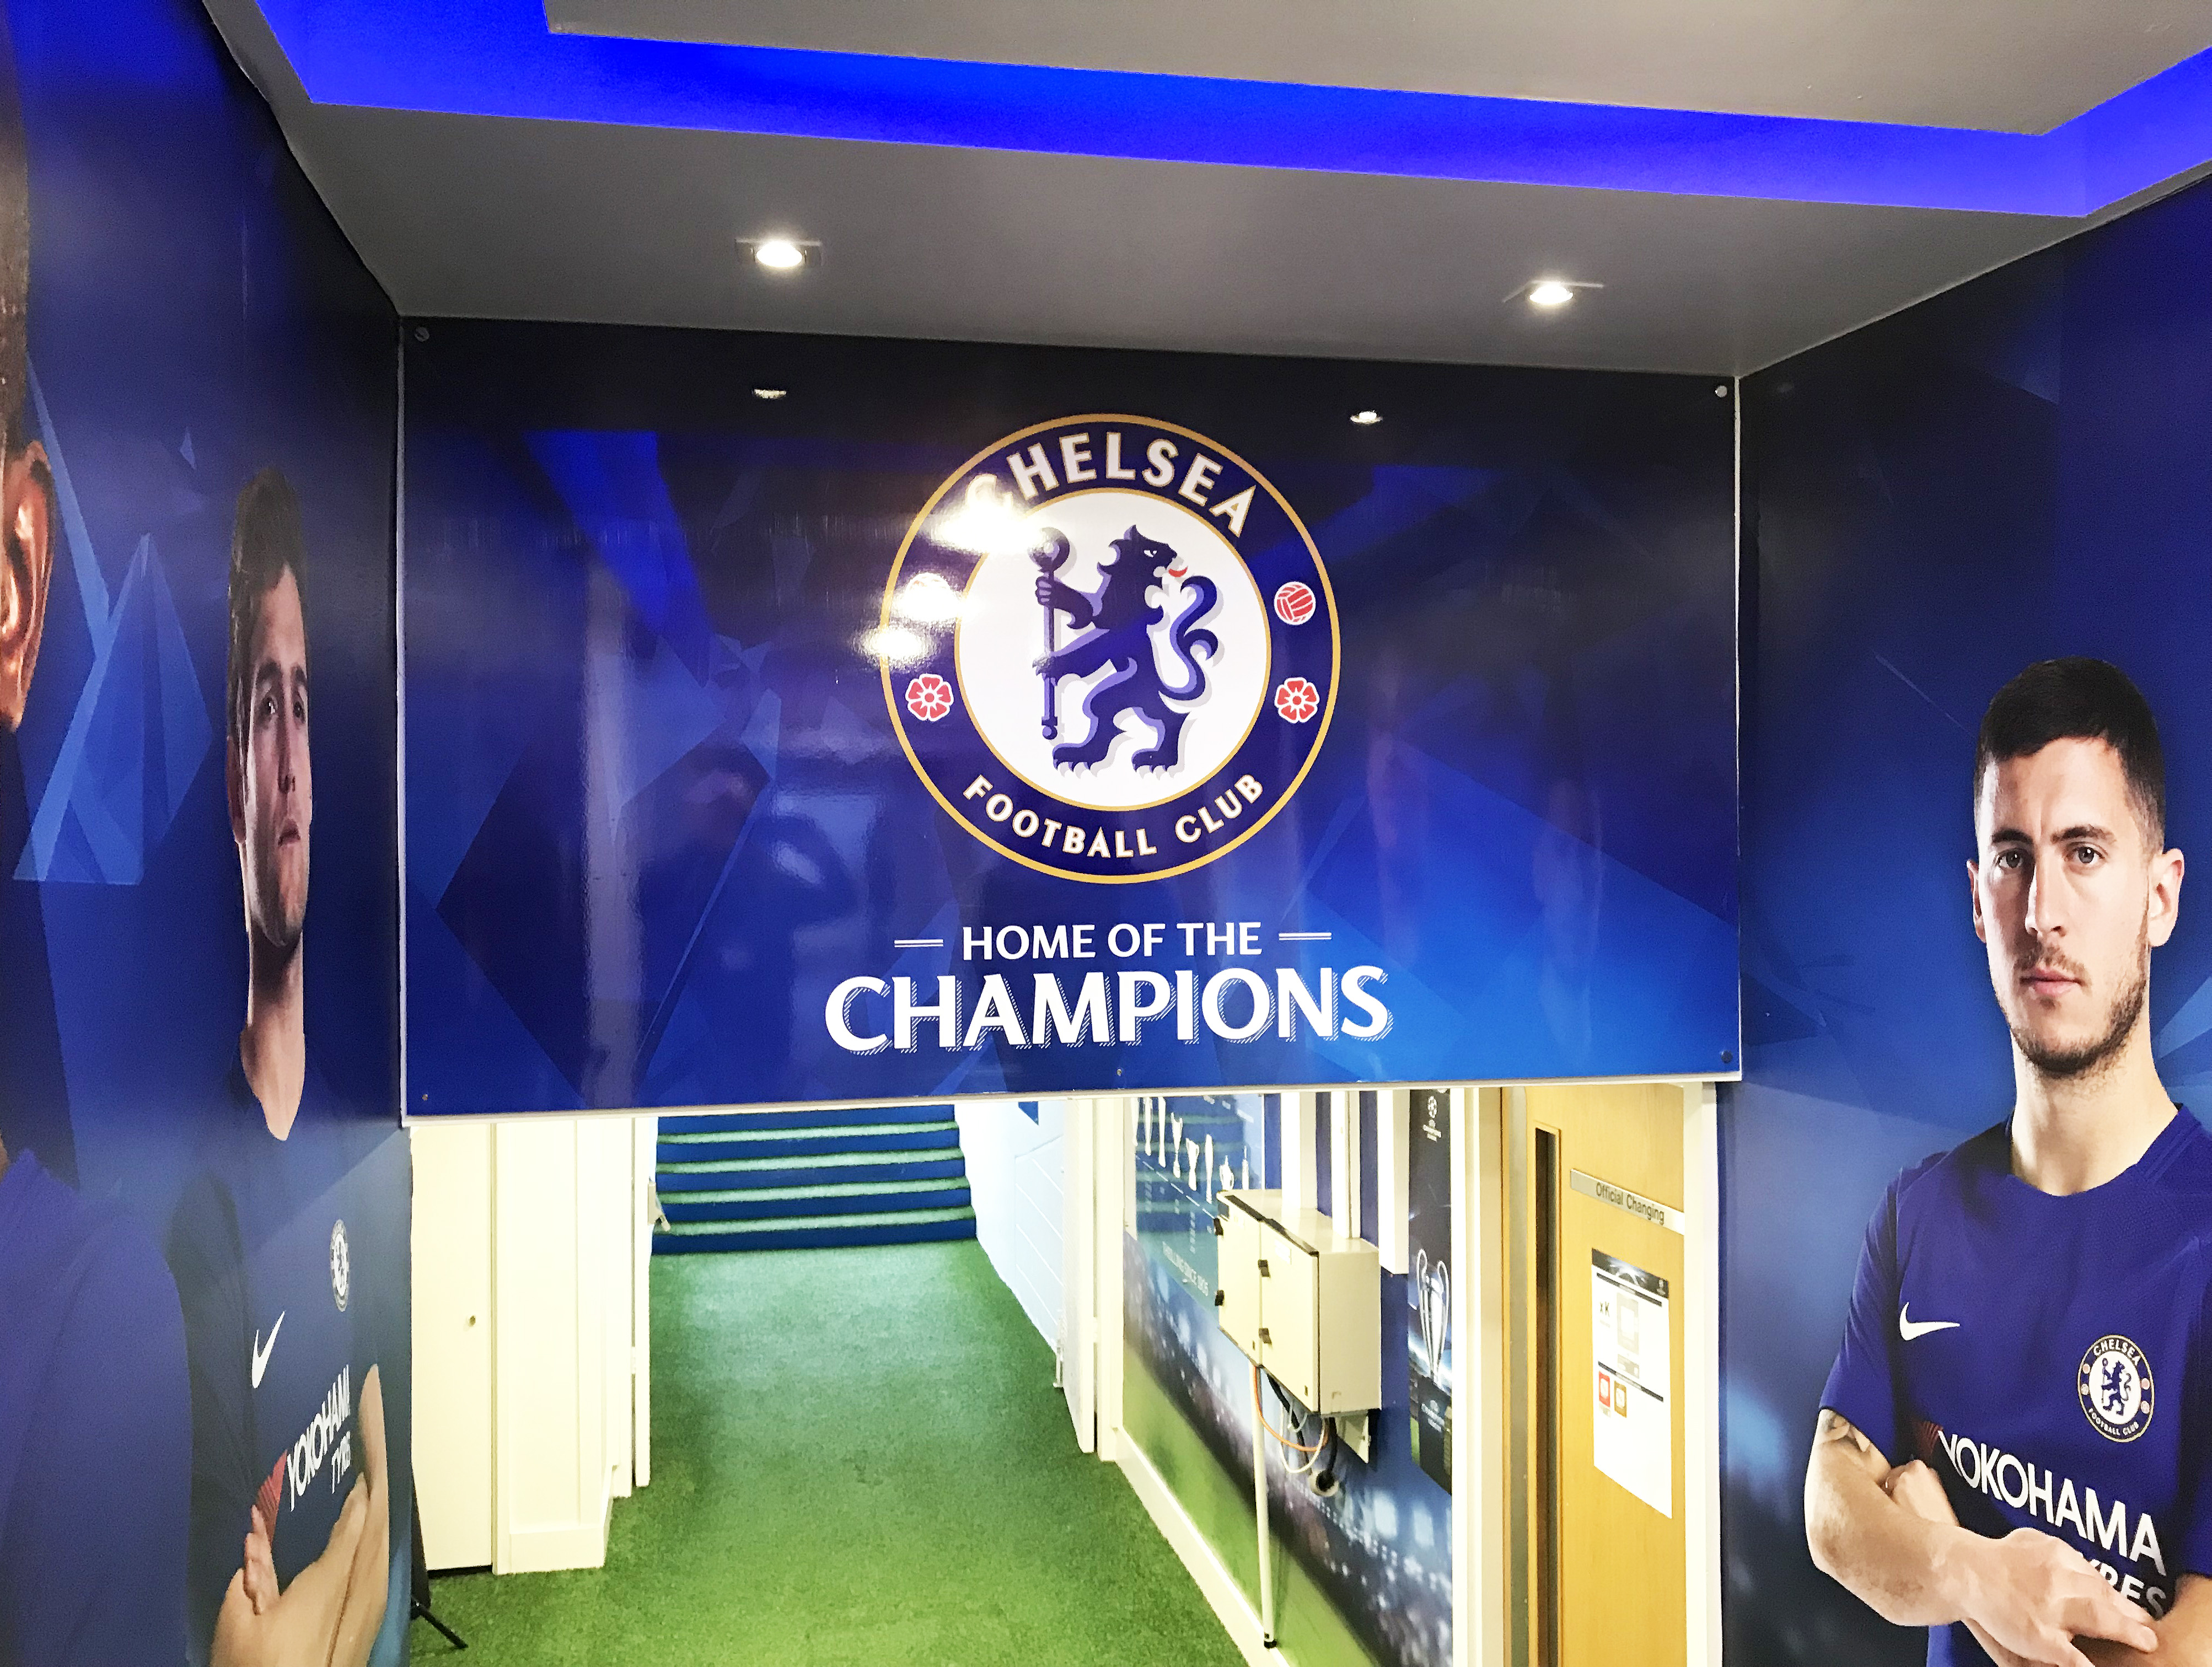 Chelsea Tunnel